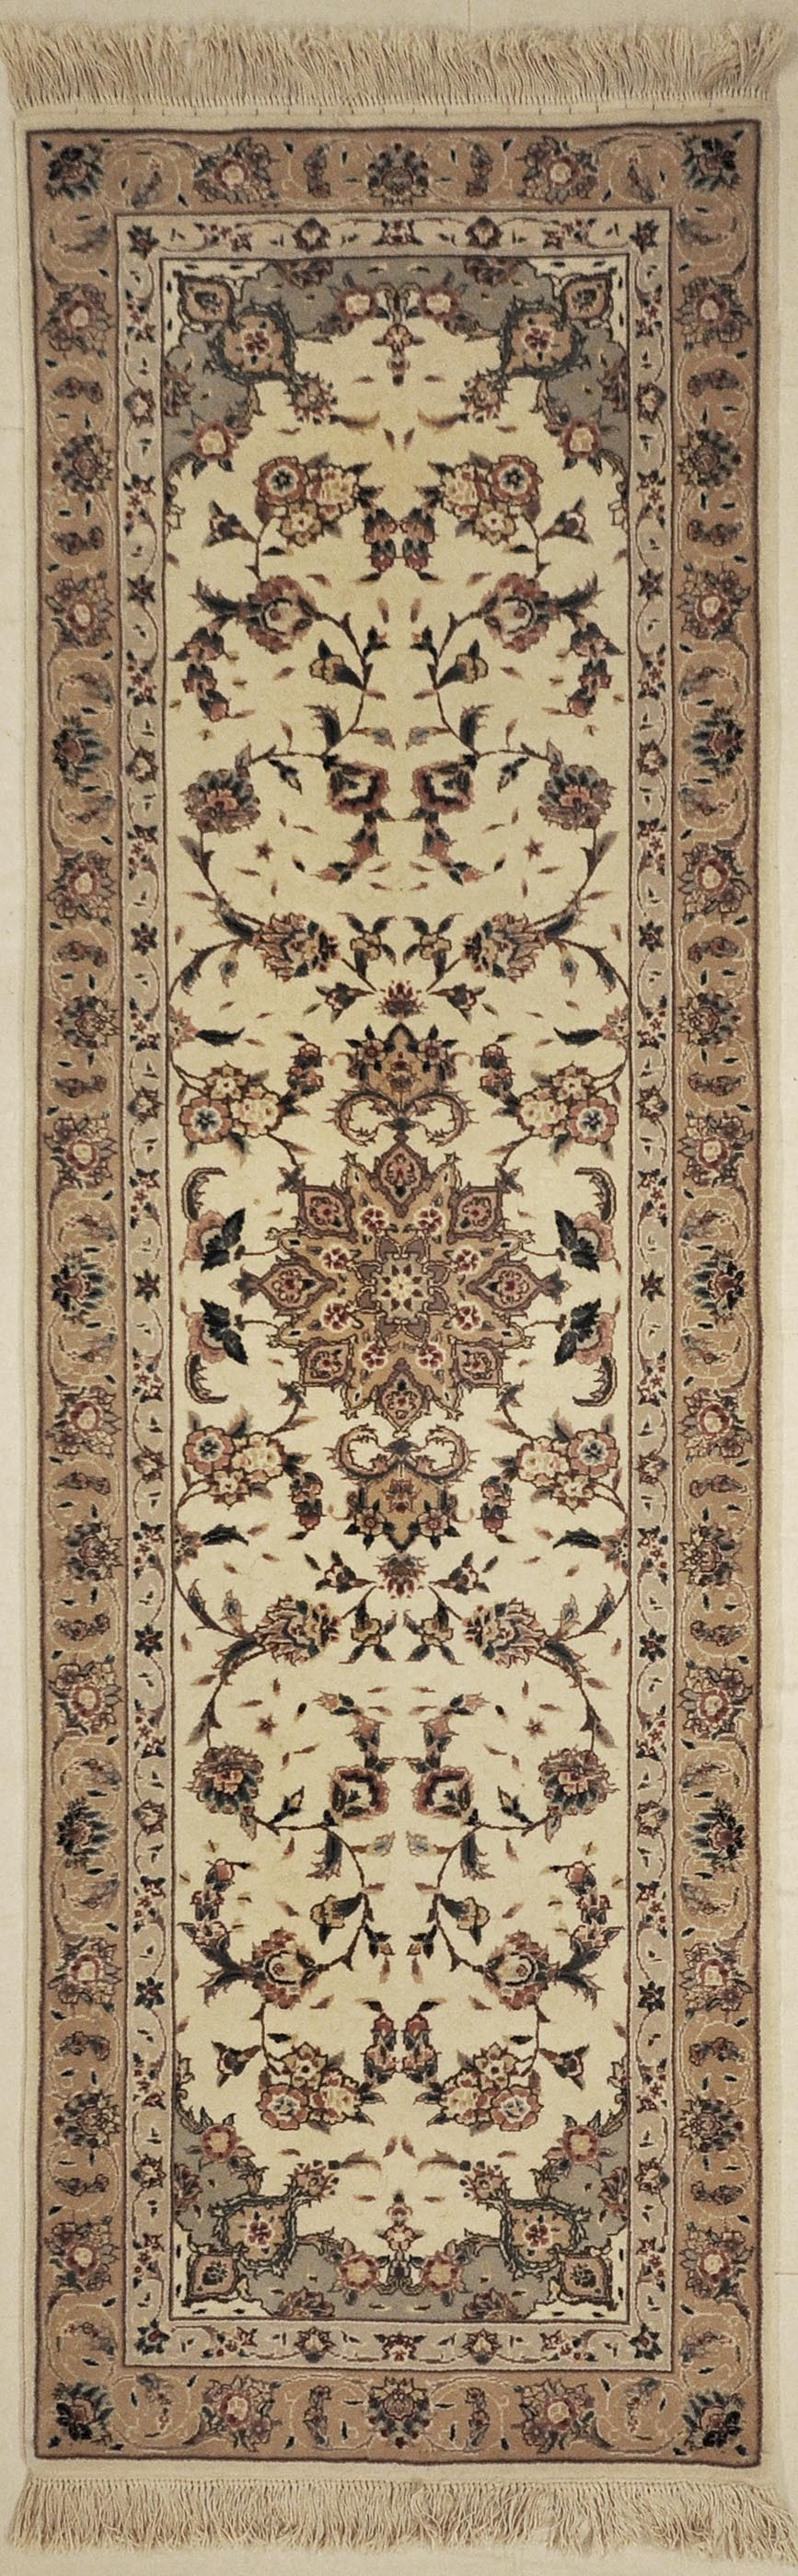 Fine Tabriz Runner rugs and more oriental carpet 44296-